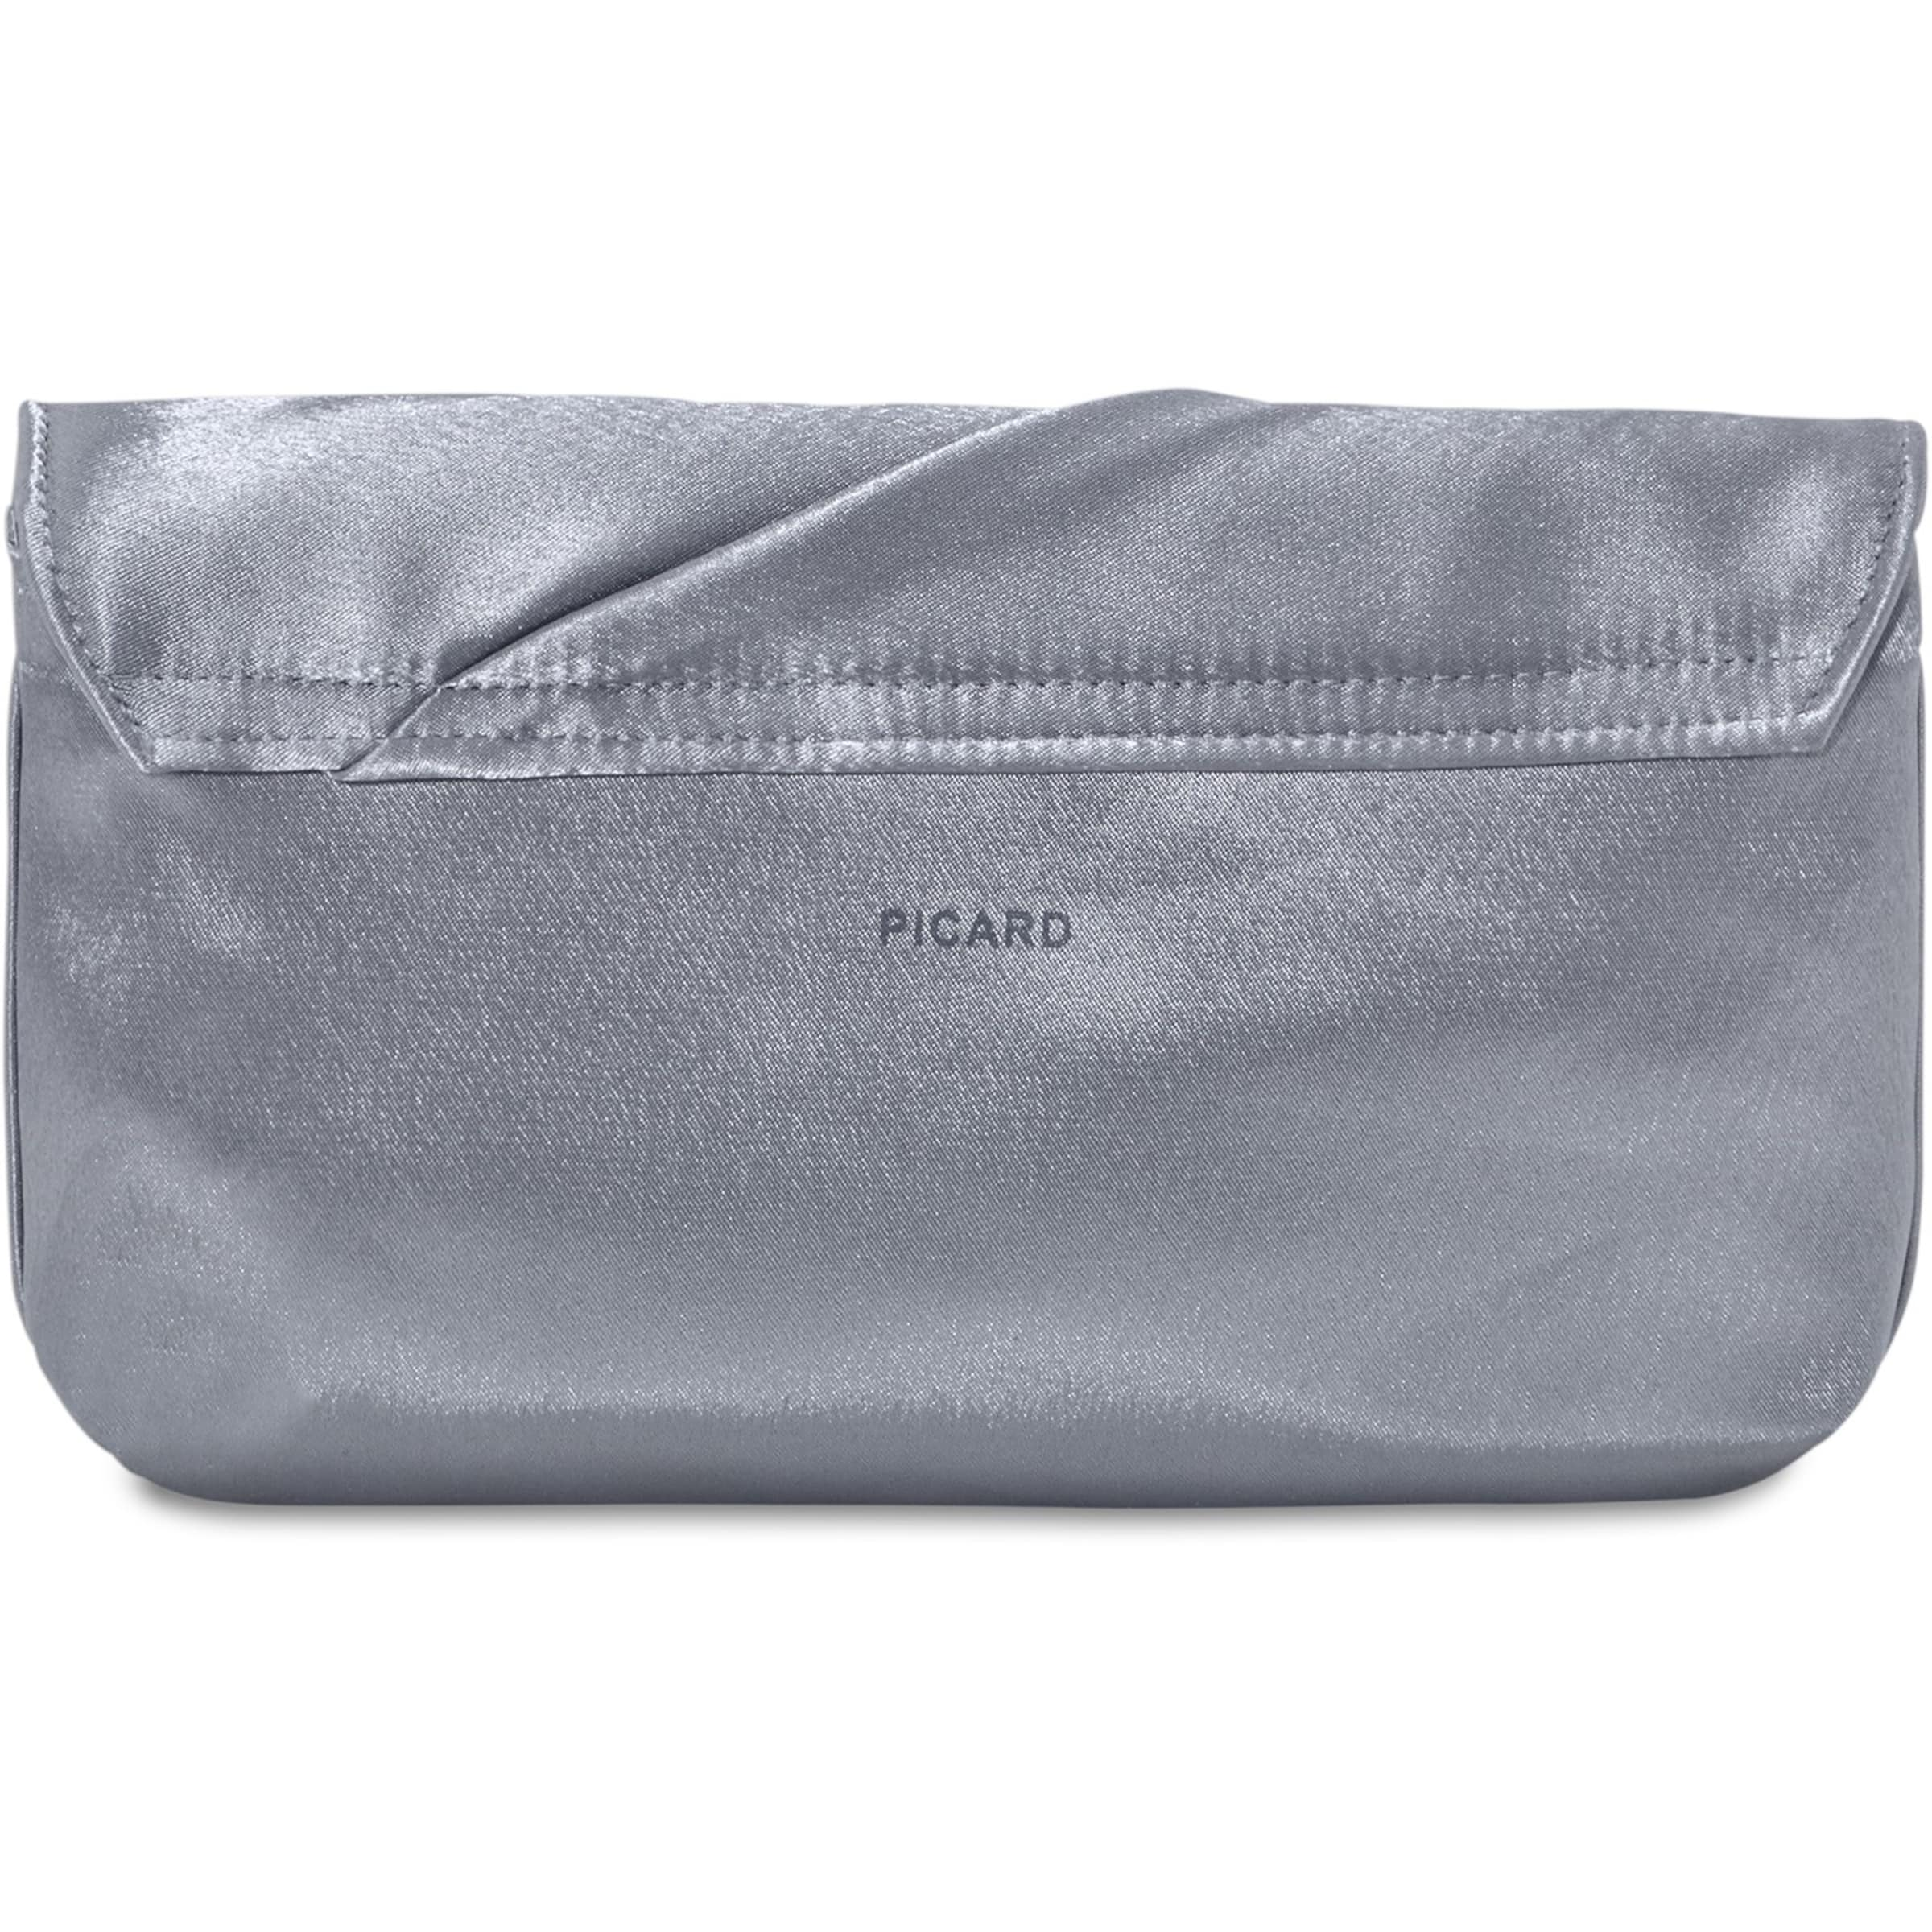 Silber Clutch 'scala' Picard Picard Clutch In Silber 'scala' In 8nOXPNwk0